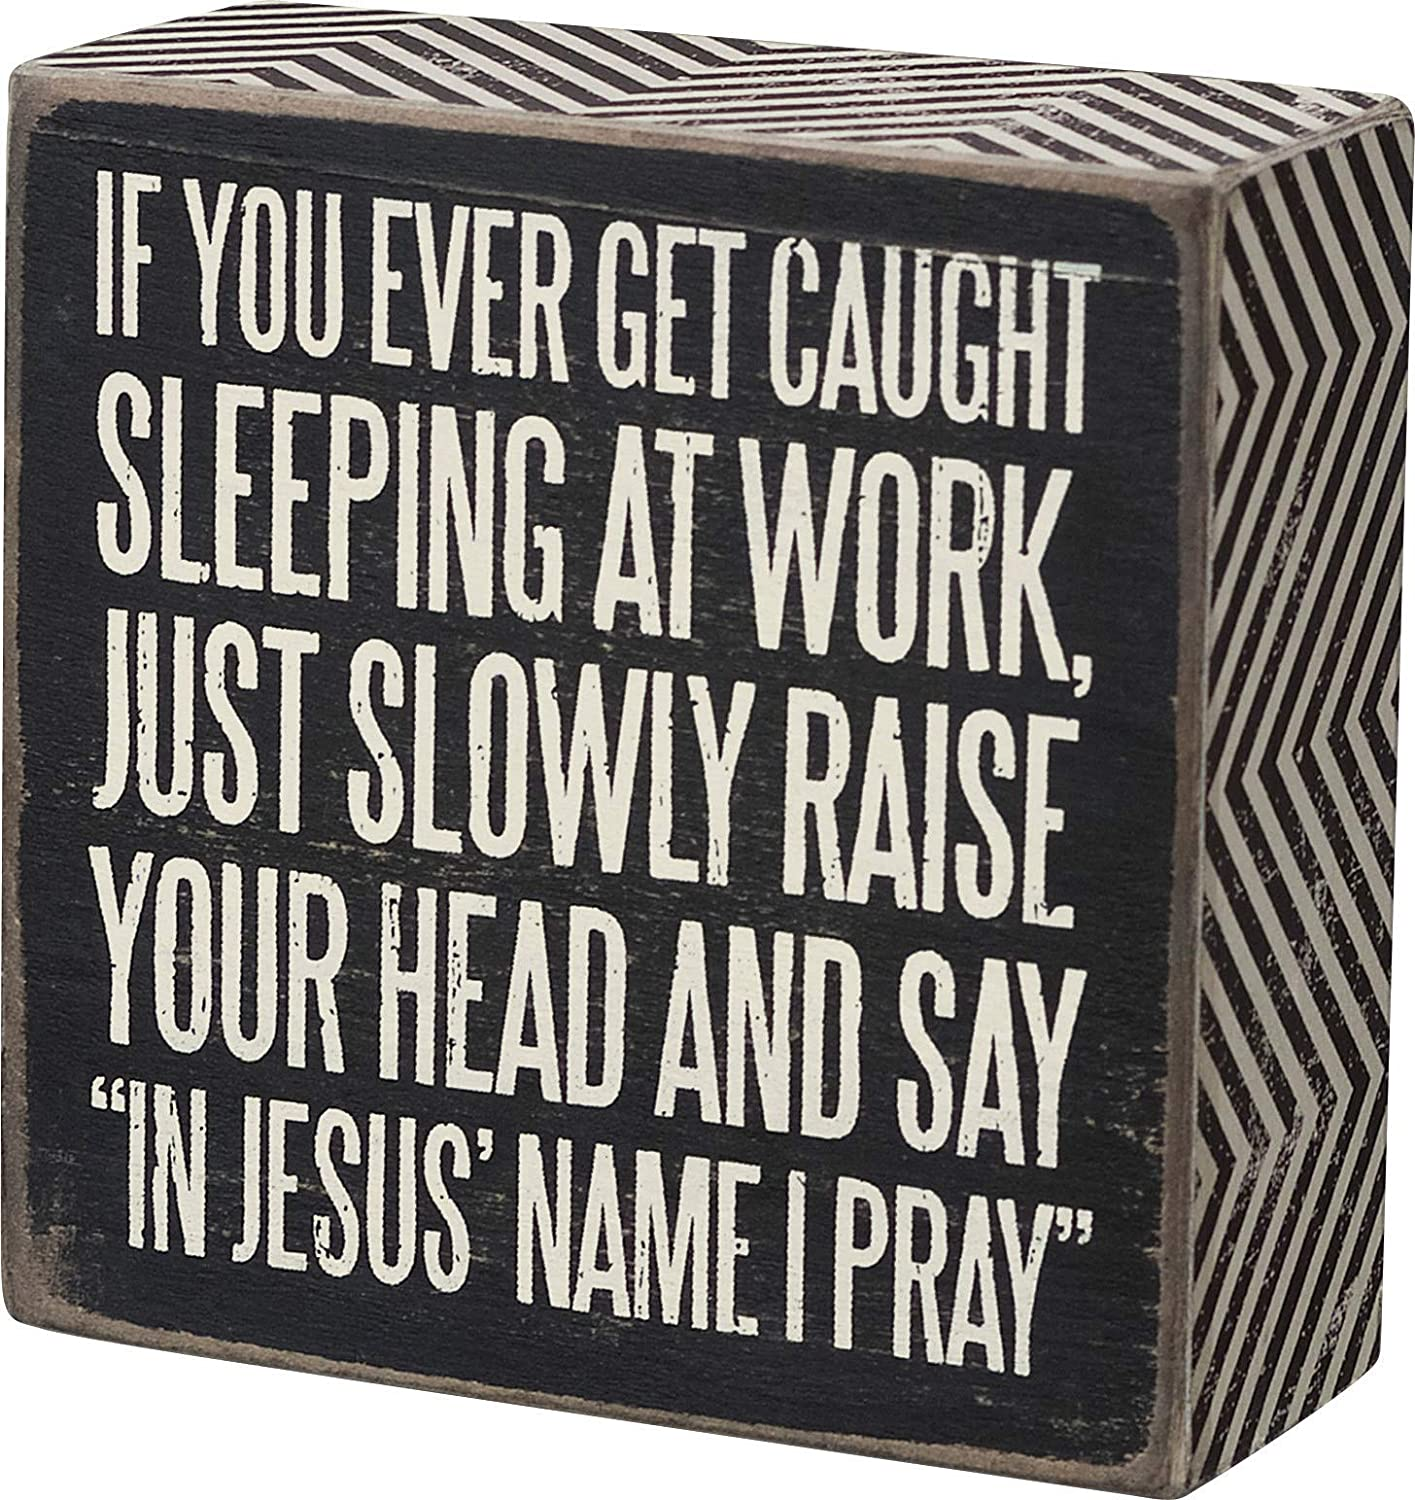 Primitives by Kathy 21358 Chevron Trimmed Box Sign, 4 x 4-Inches, Caught Sleeping